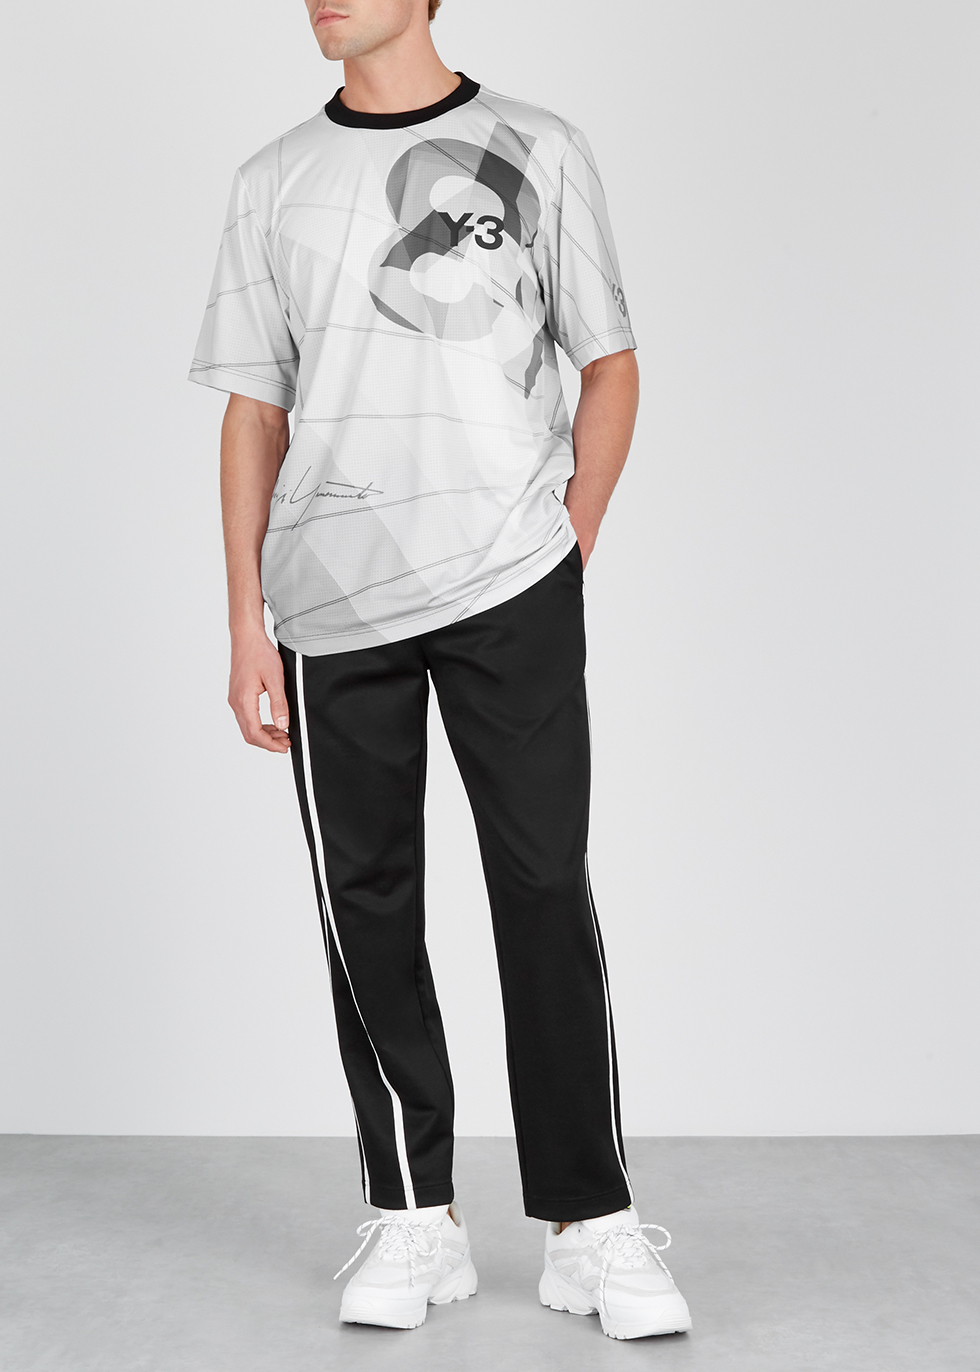 Light grey printed jersey T-shirt - Y-3